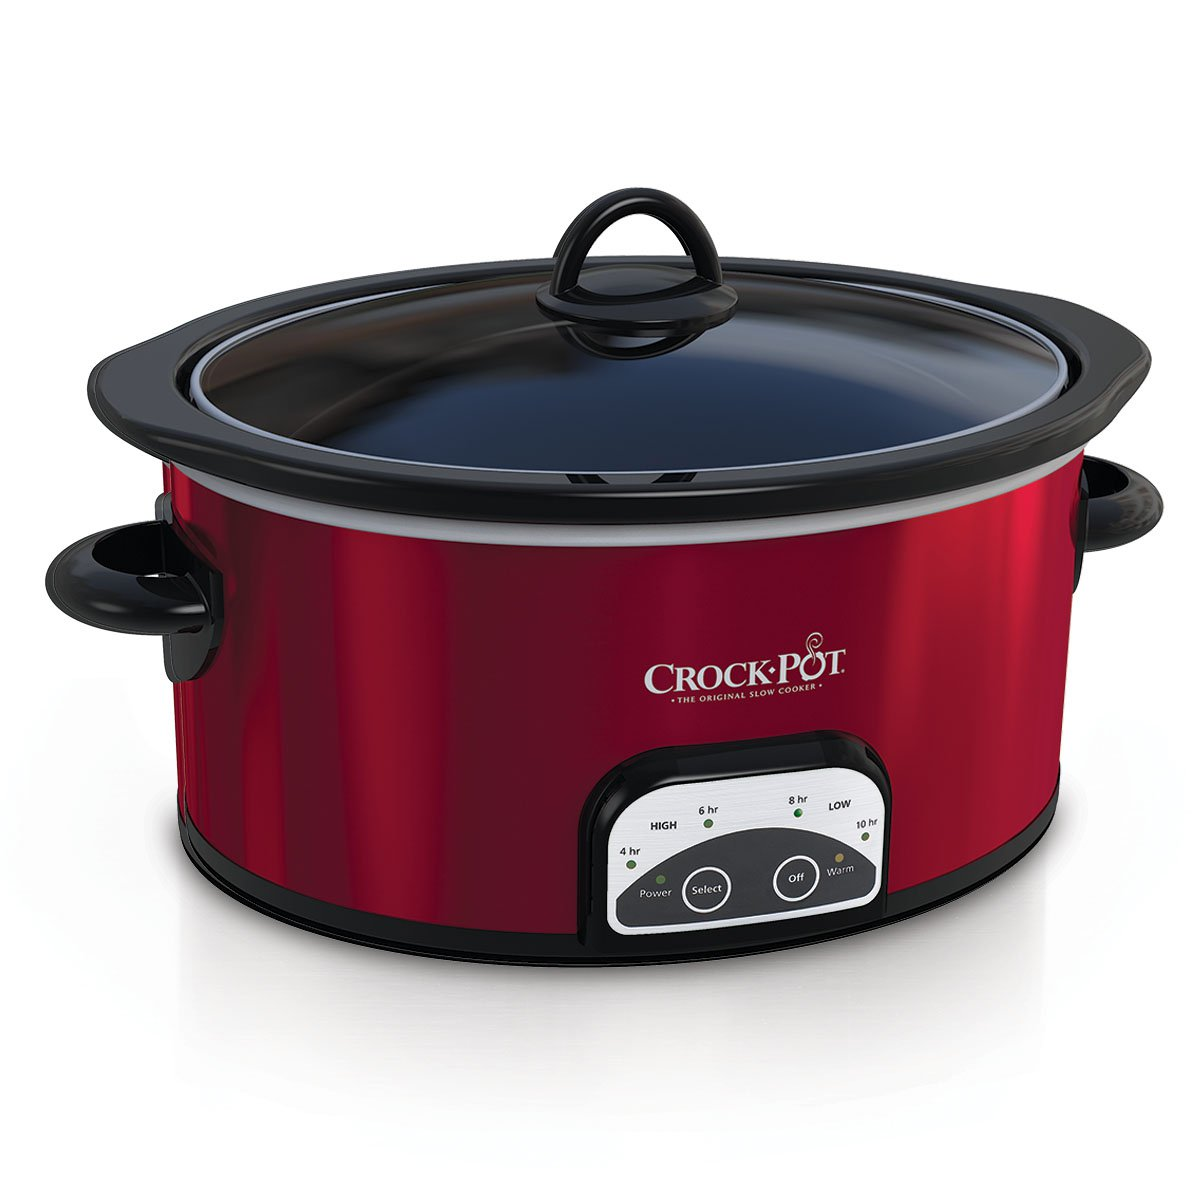 Crock-Pot 4 Quart Oval Cook and Carry Kitchen Programmable Slow Cooker, Red